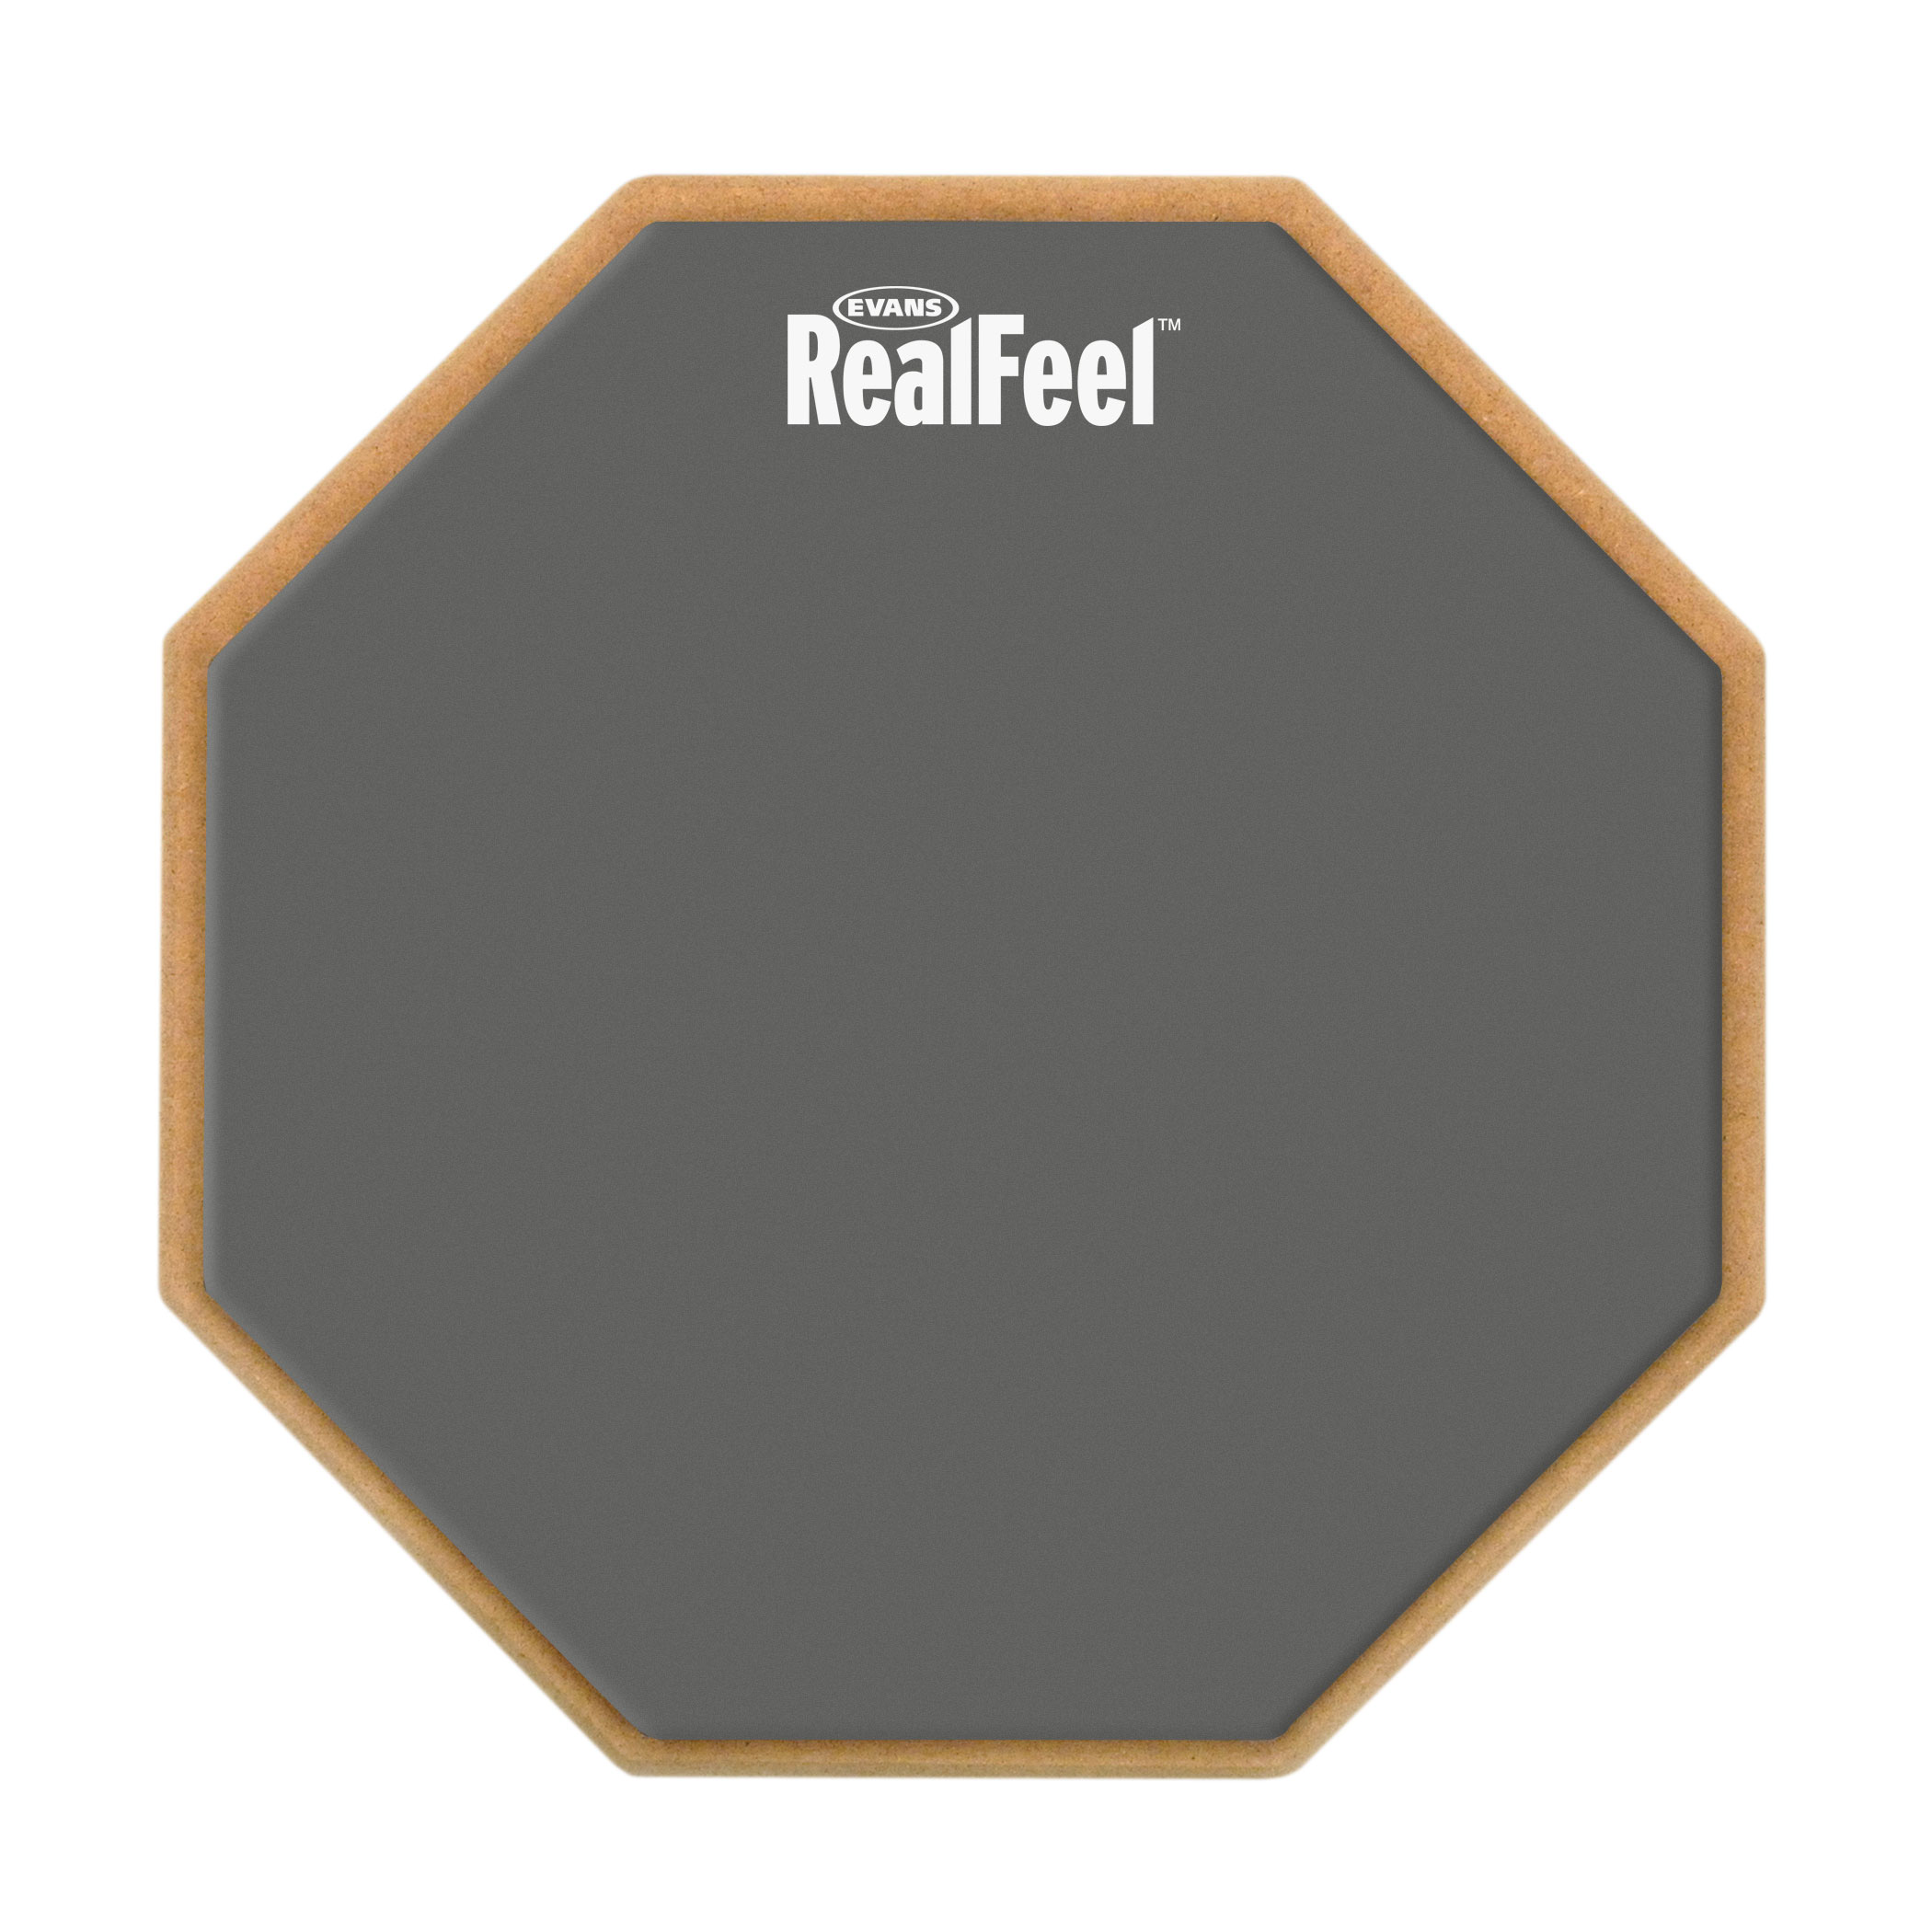 "Evans 12"" RealFeel Double-Sided Practice Pad"